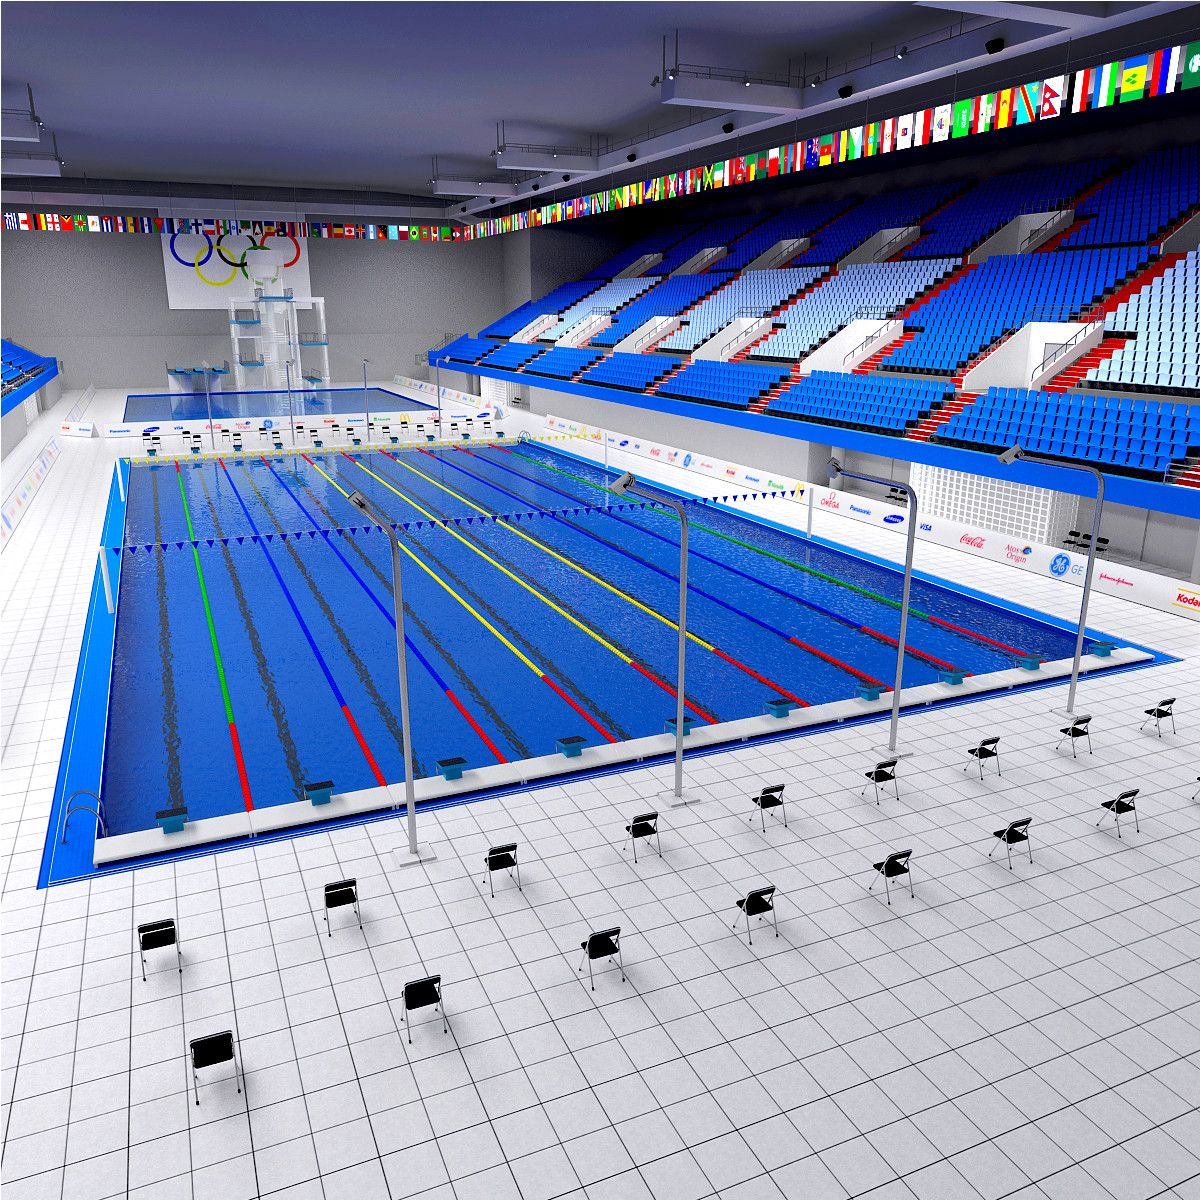 Indoor Olympic Pool Design Decorating 721024 Pool Ideas Design Indoor Swimming Pool Design Swimming Pool Architecture Diving Pool